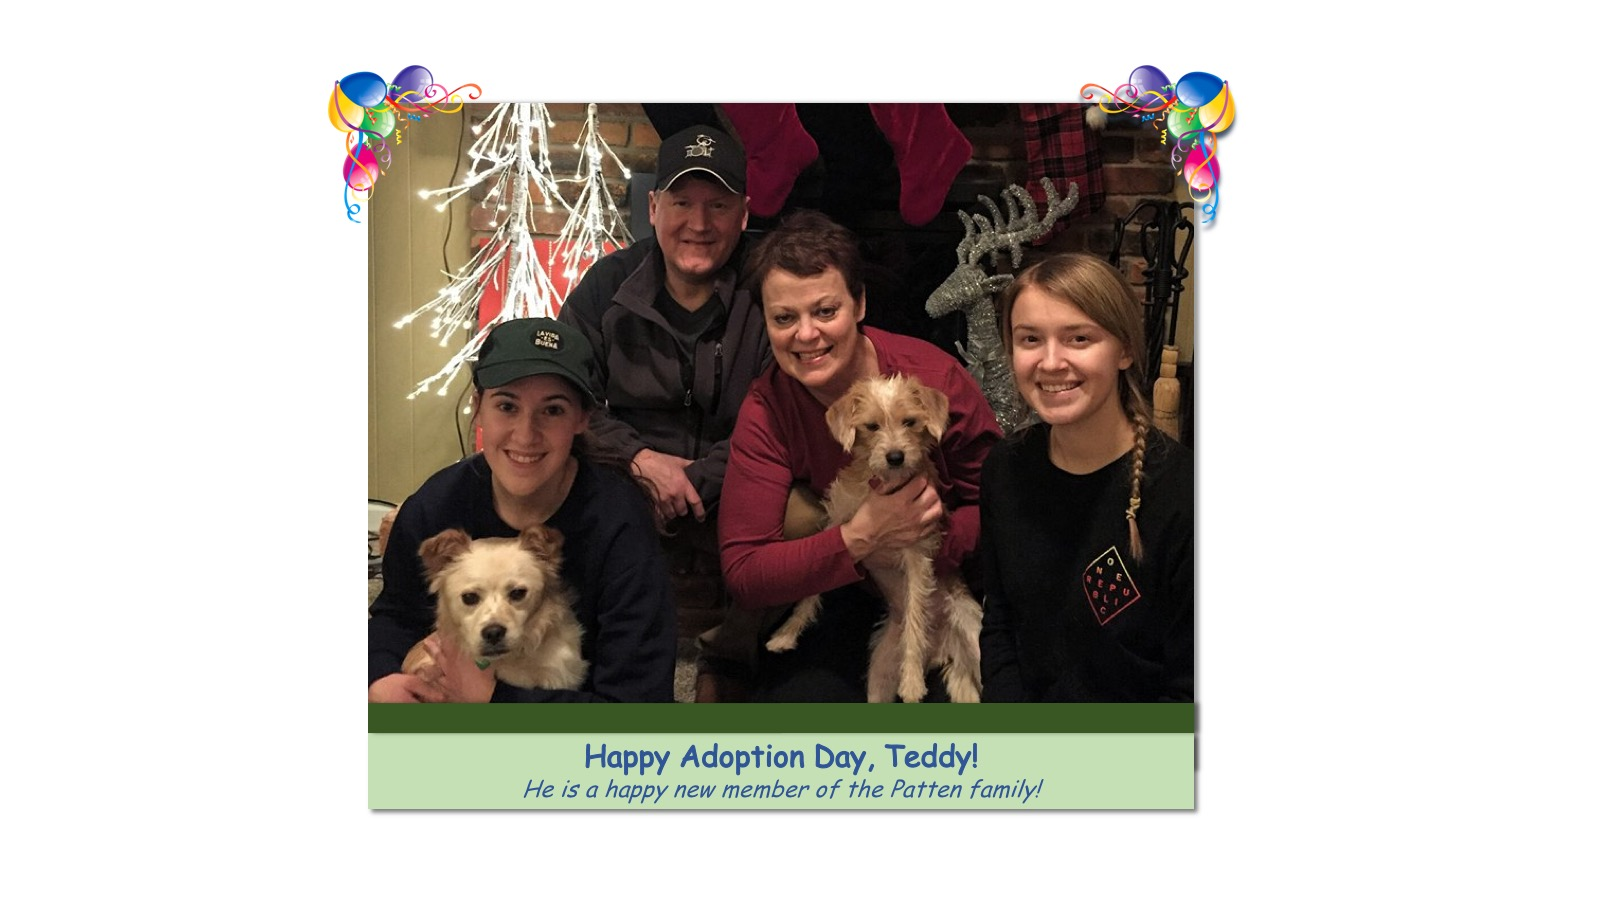 Teddy_Adoption_Photo_2018.jpg